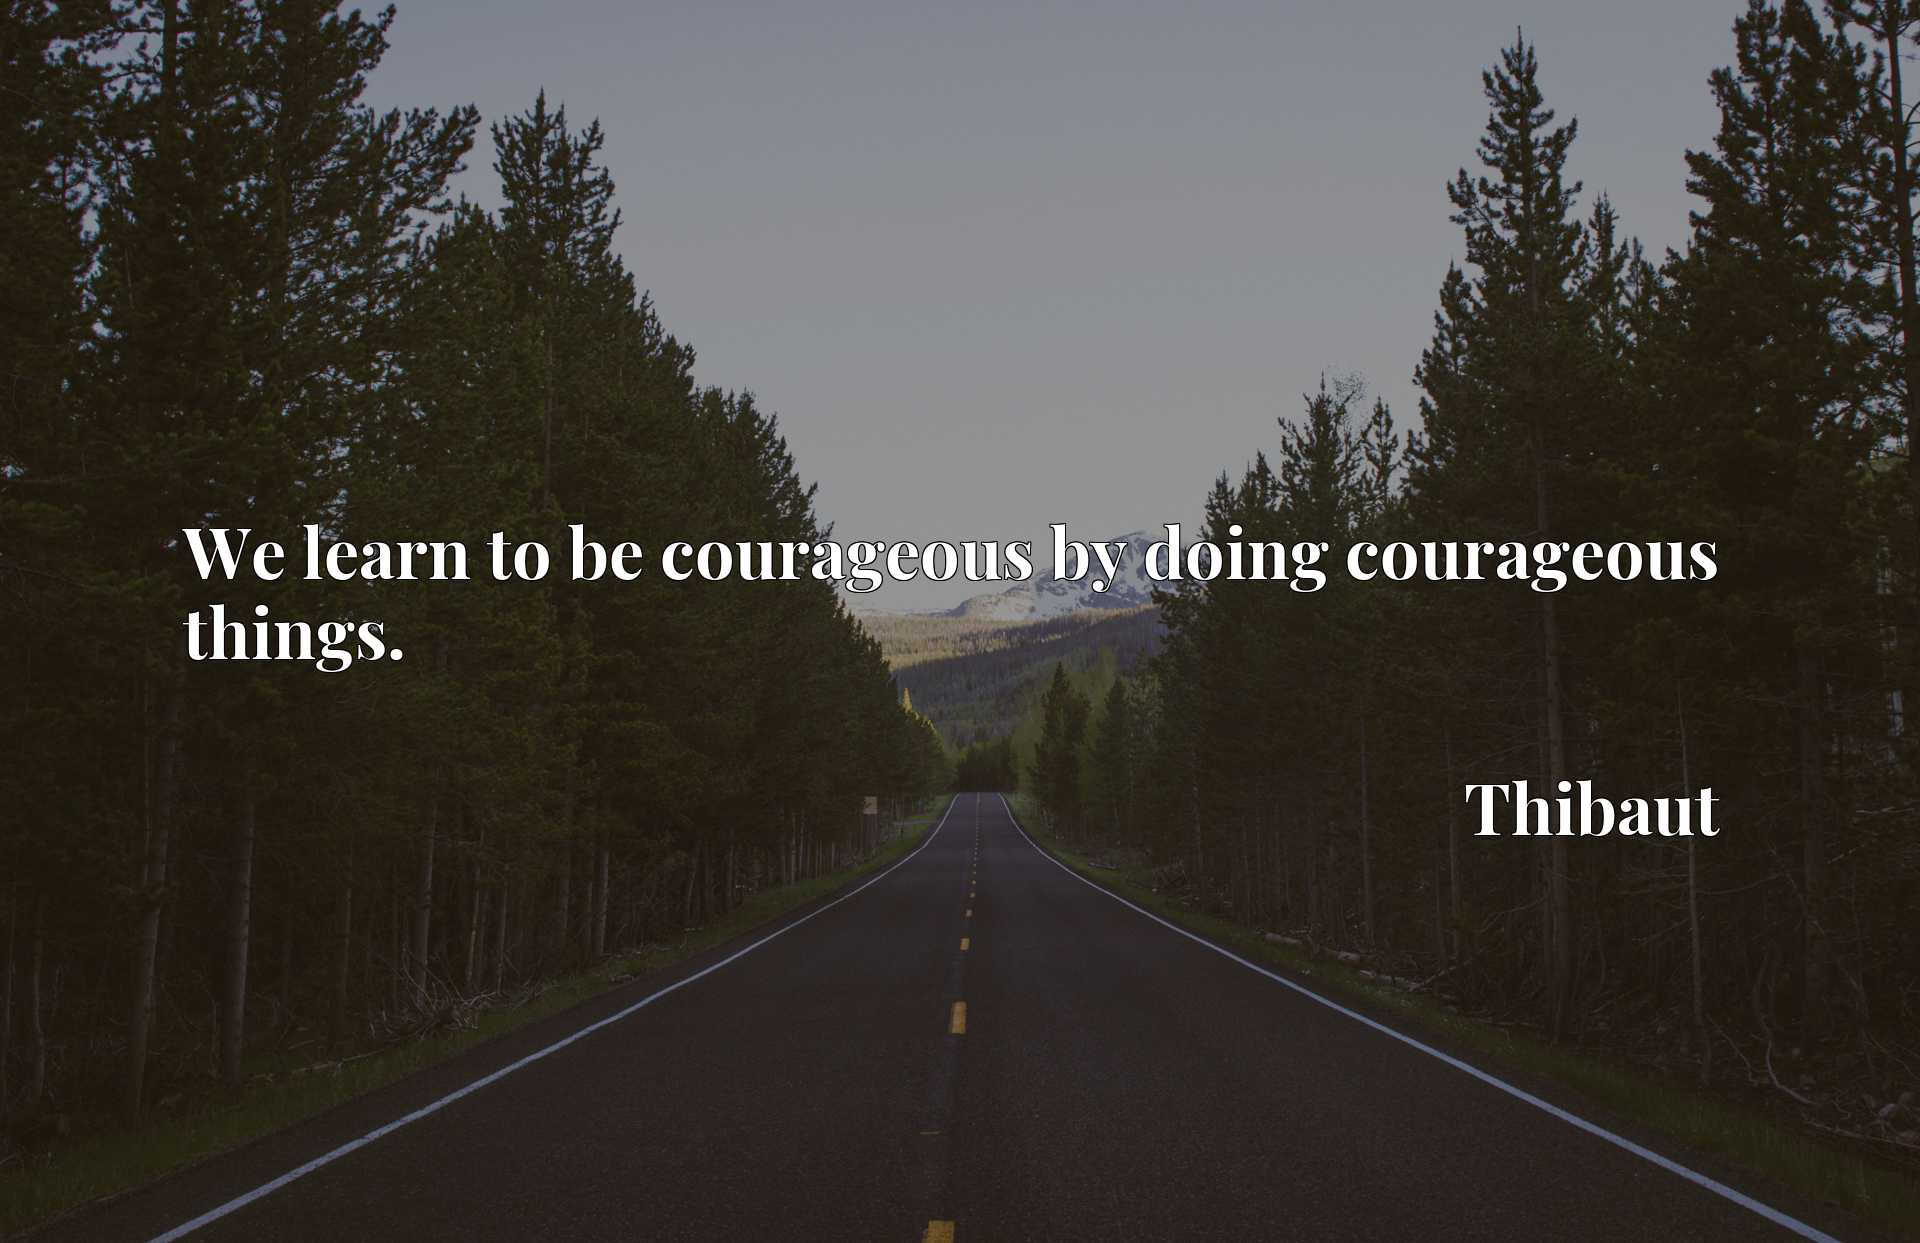 We learn to be courageous by doing courageous things.